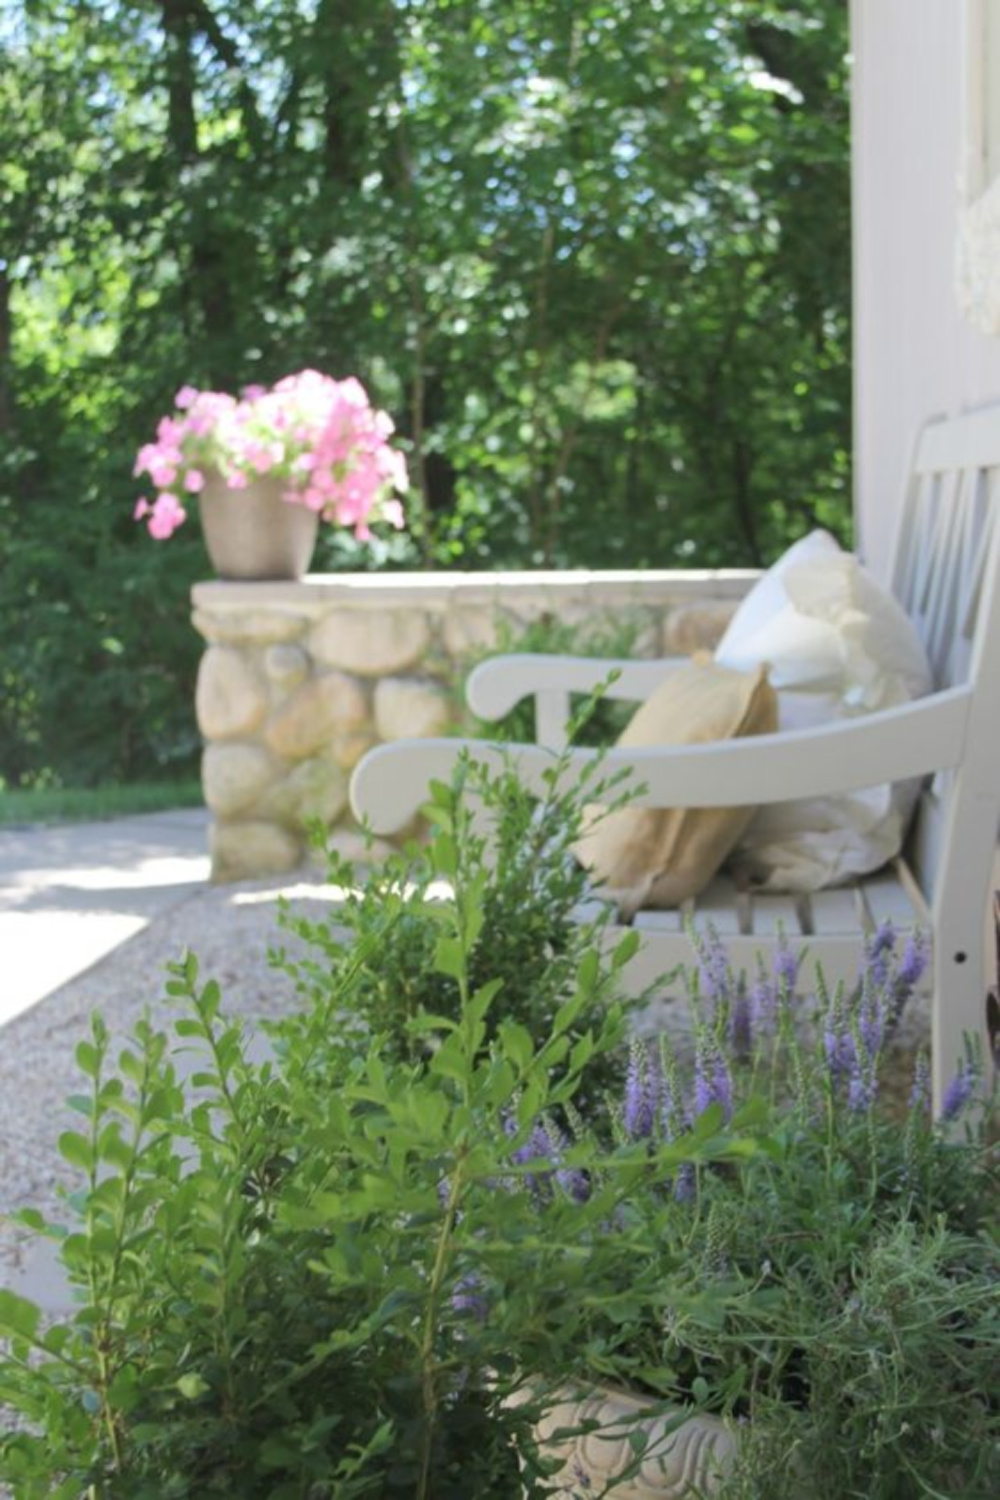 French country garden with bench and stone wall - Hello Lovely.